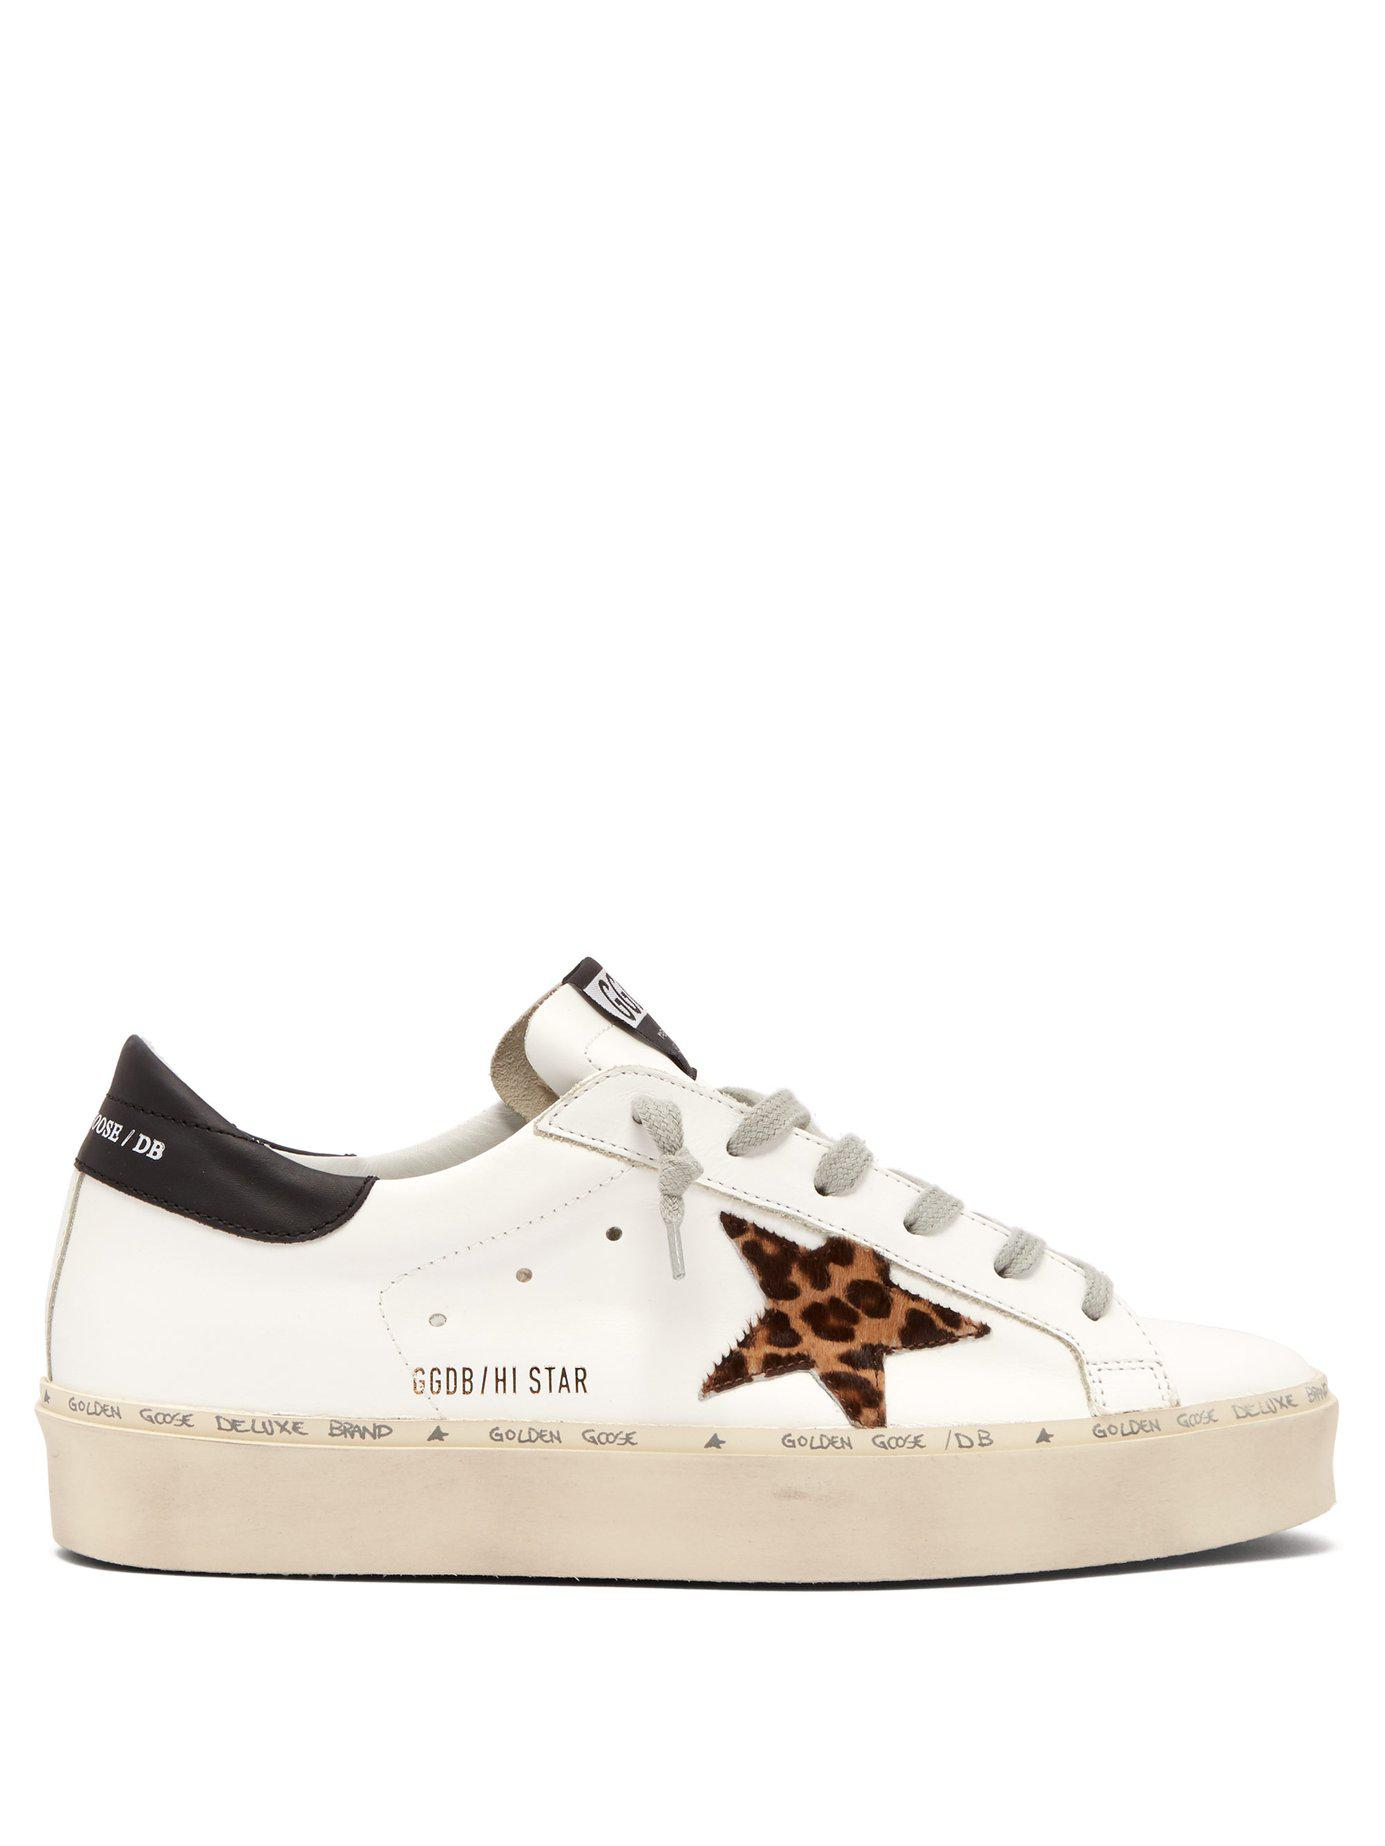 72edda1c8376 Golden Goose Deluxe Brand. Women s Hi Star Leather Low Top Trainers